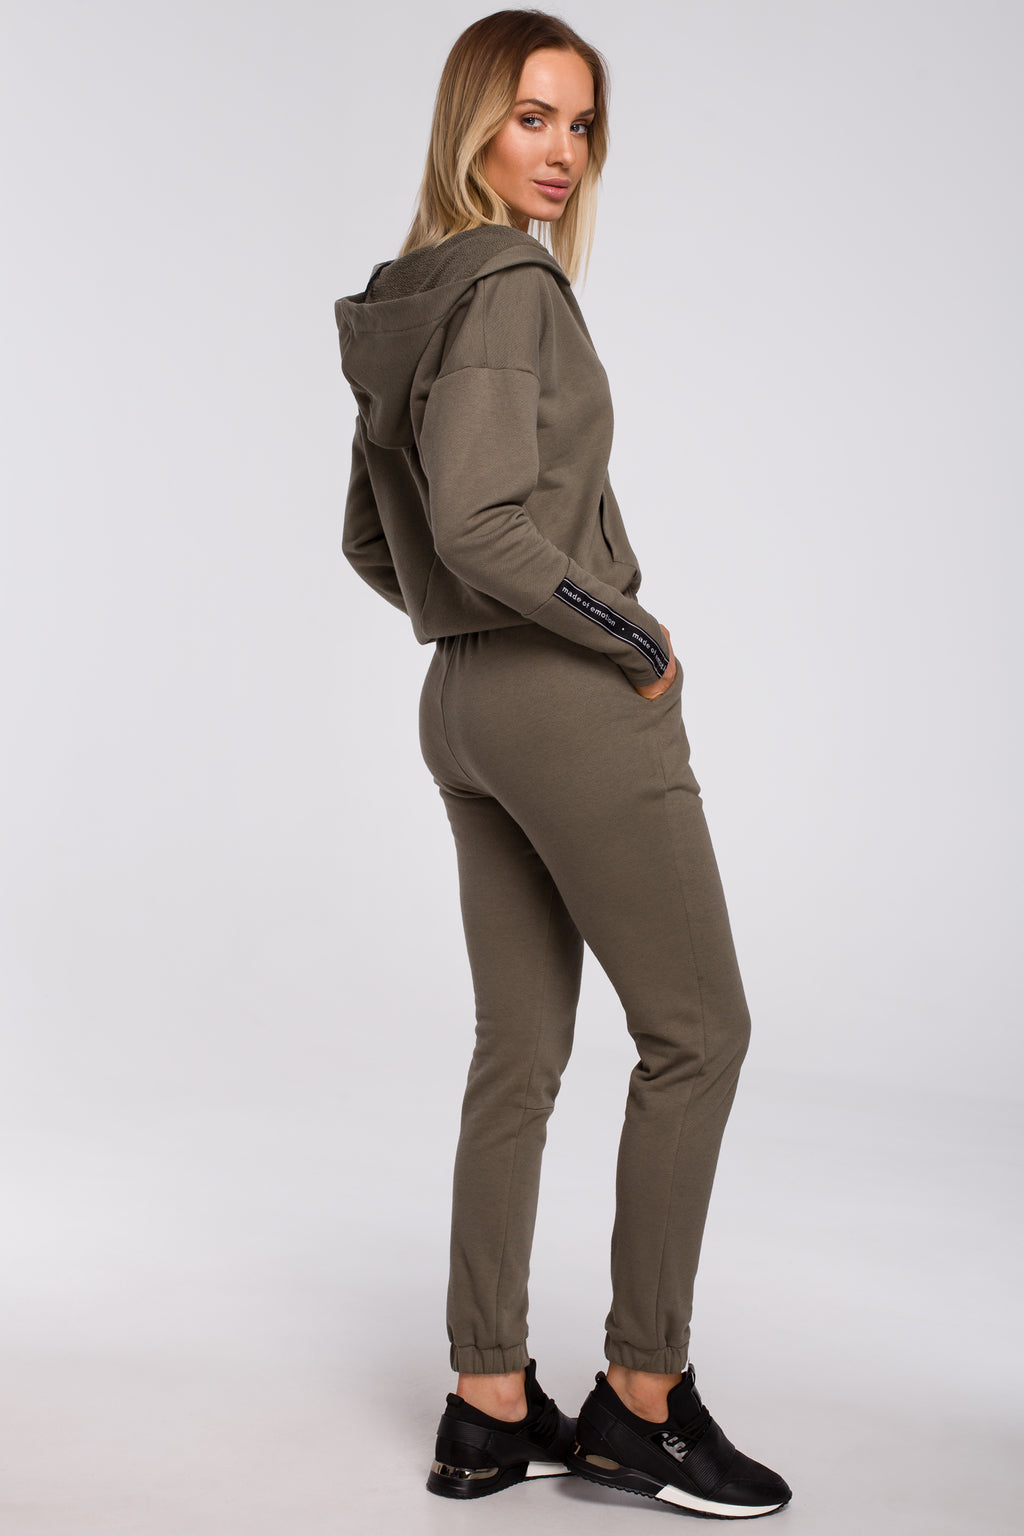 Khaki Joggers With Logo Stripes - So Chic Boutique